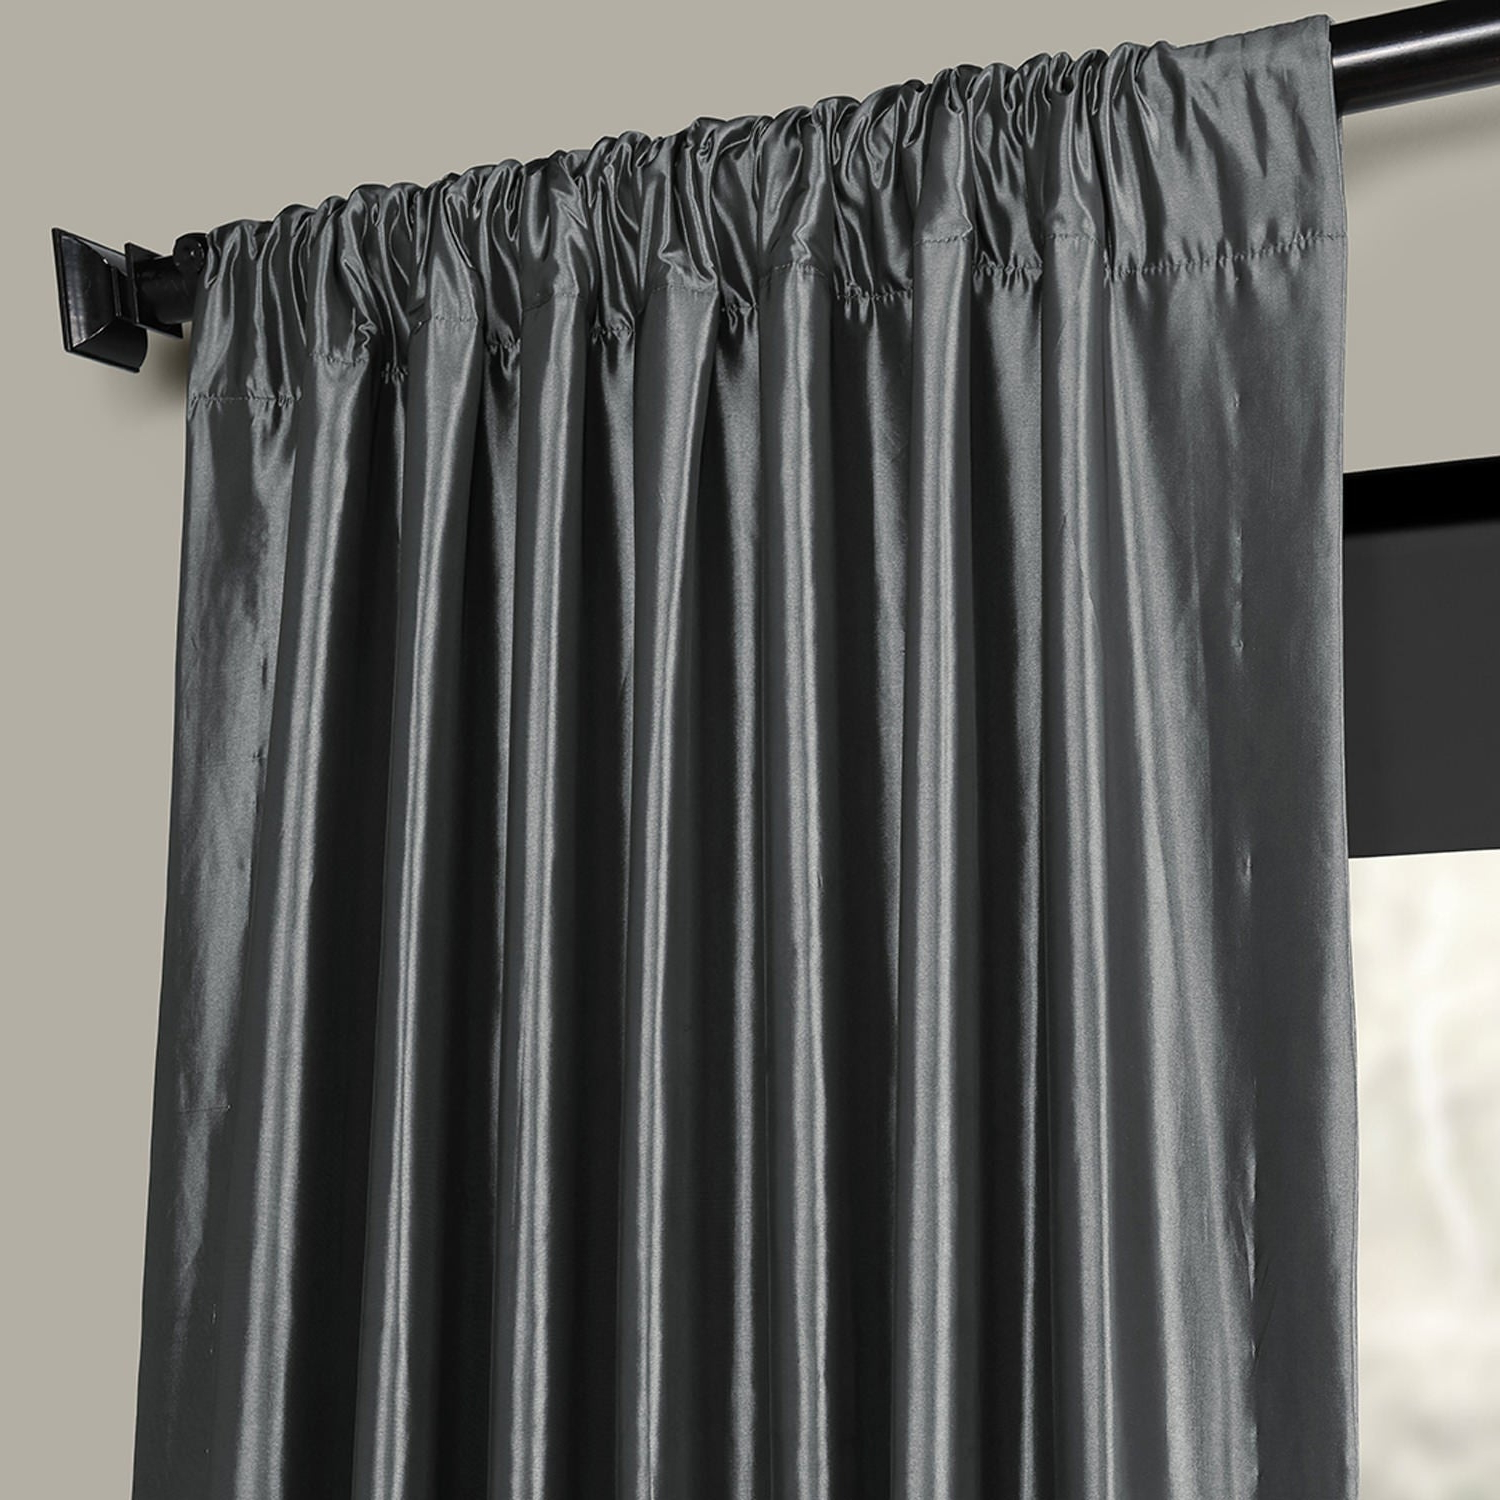 2020 Solid Faux Silk Taffeta Graphite Single Curtain Panels Within Exclusive Fabrics Solid Faux Silk Taffeta Graphite Single Curtain Panel (View 3 of 20)